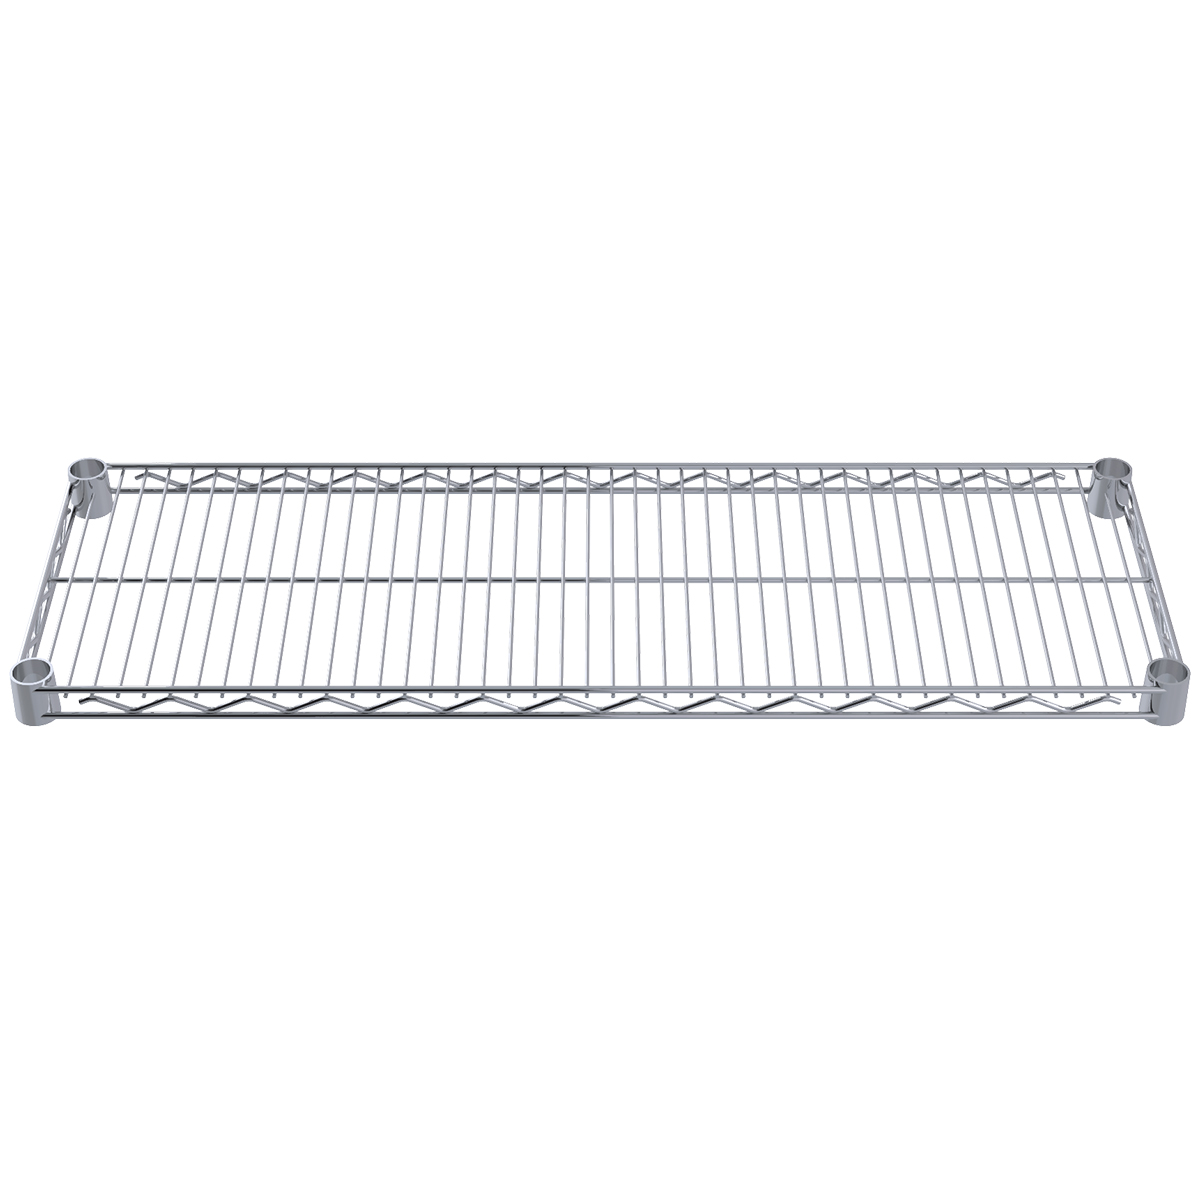 12 X 36 Wire Shelf, Chrome (AWS1236SHELF).  This item sold in carton quantities of 4.